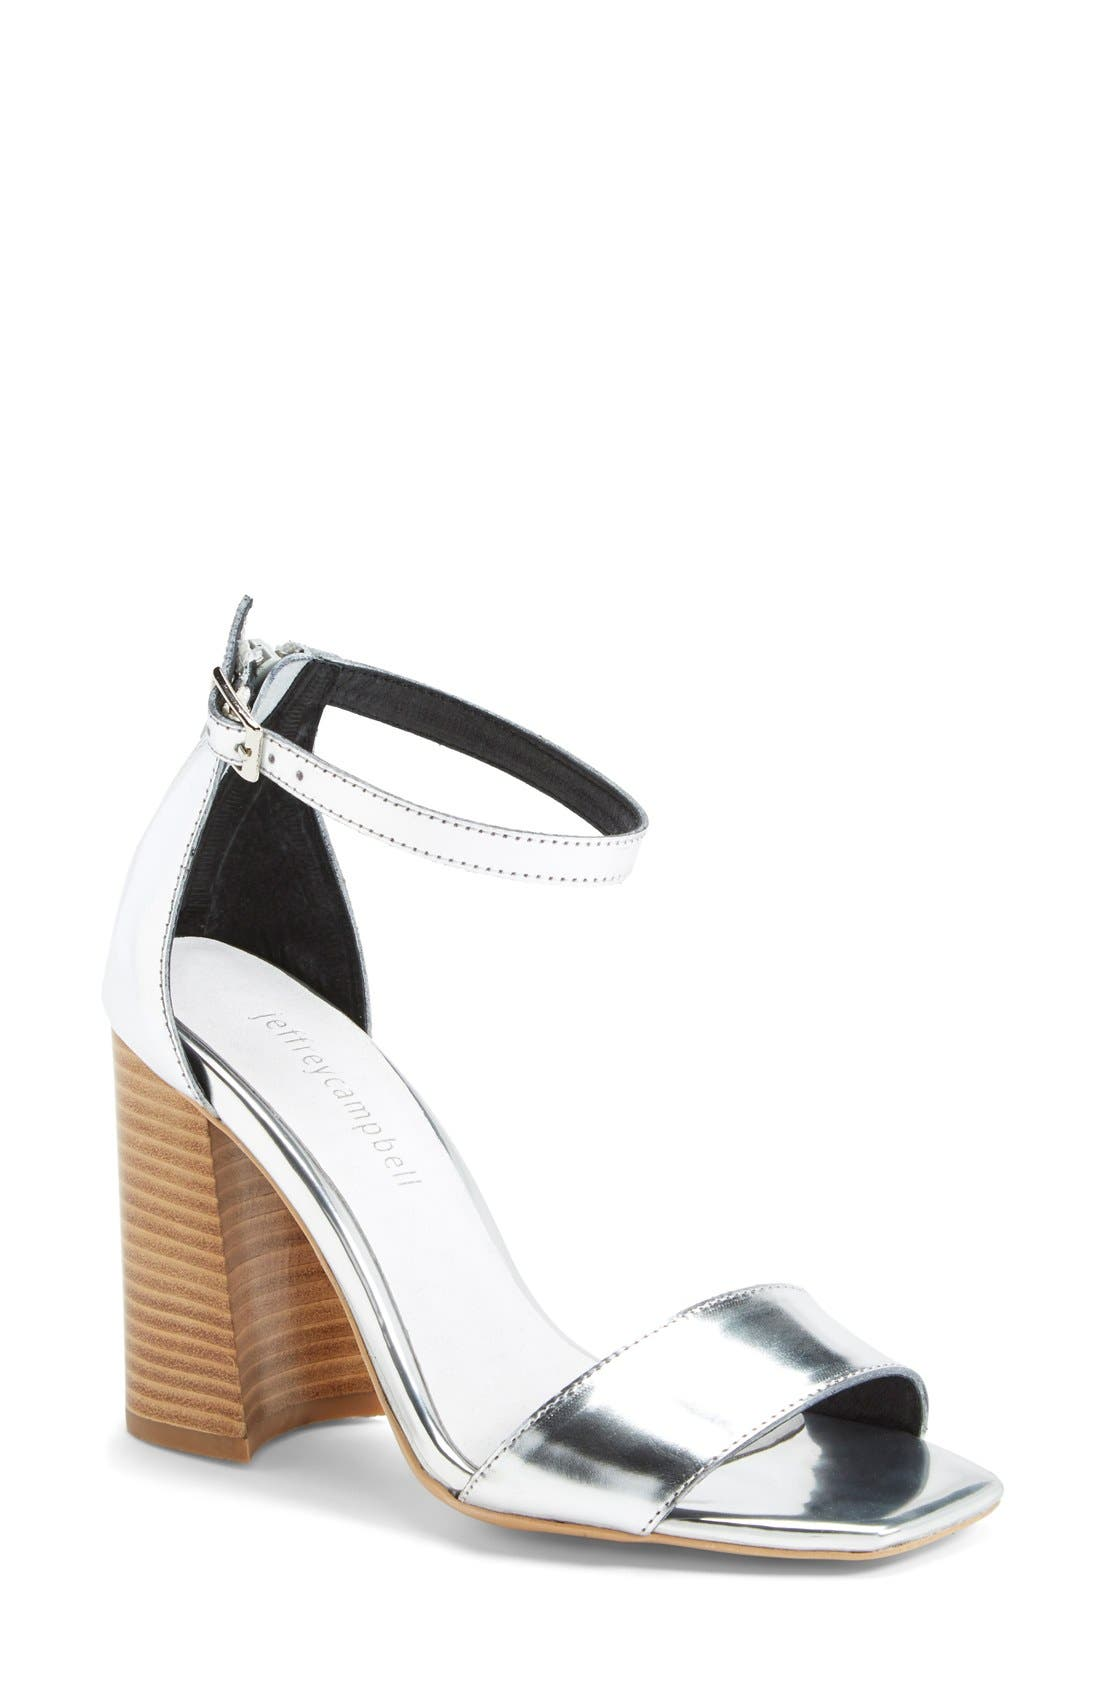 Alternate Image 1 Selected - Jeffrey Campbell 'Manor' Metallic Leather Ankle Strap Sandal (Women)